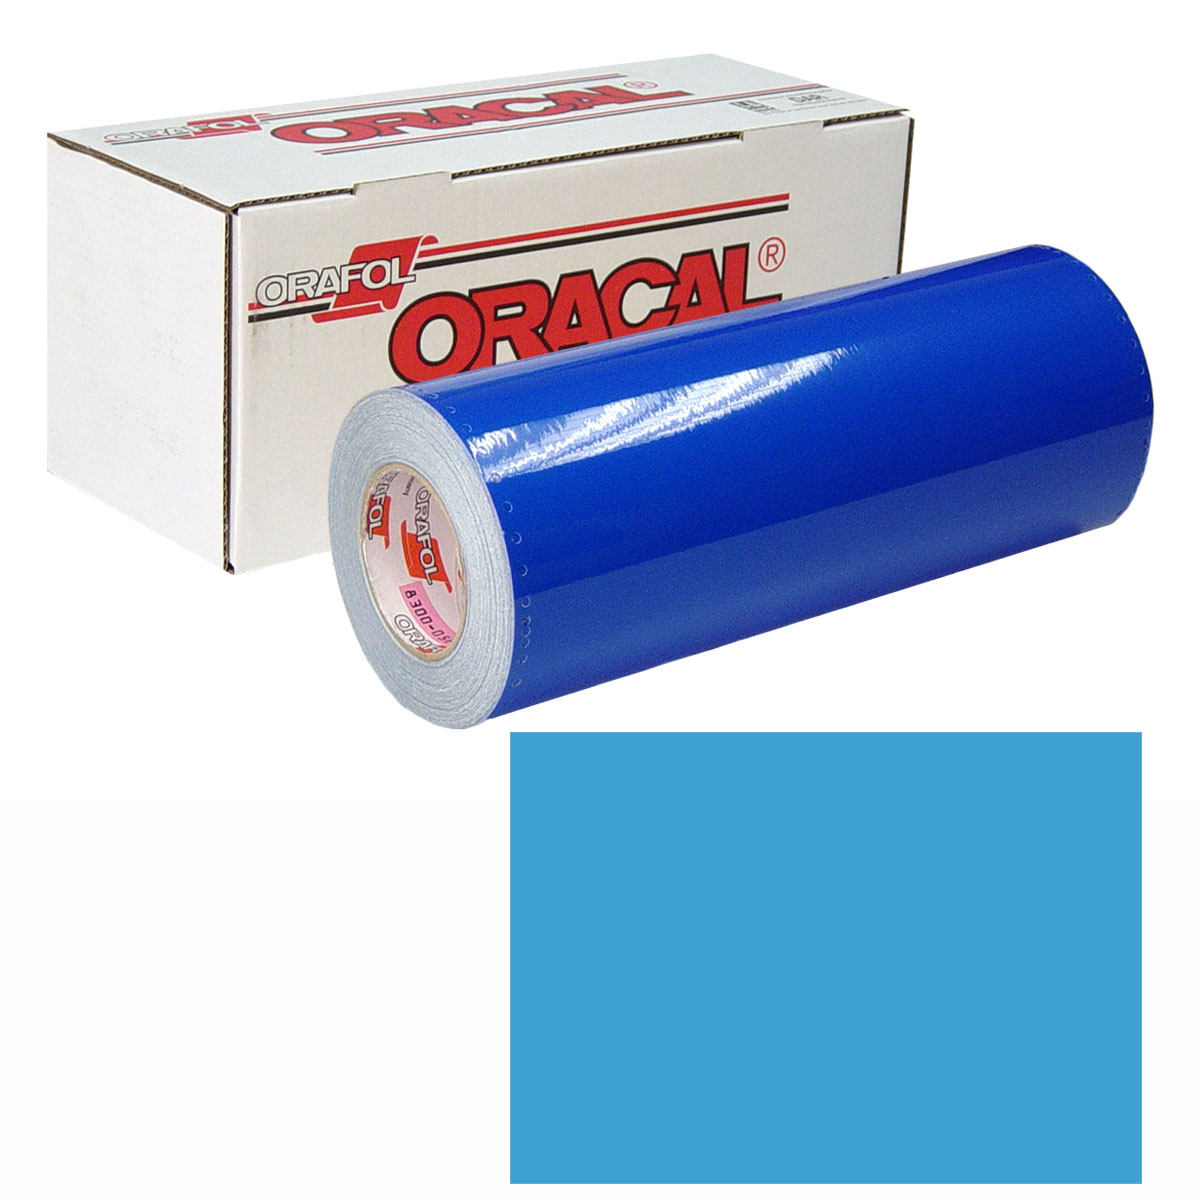 ORACAL 631 15In X 10Yd 056 Ice Blue